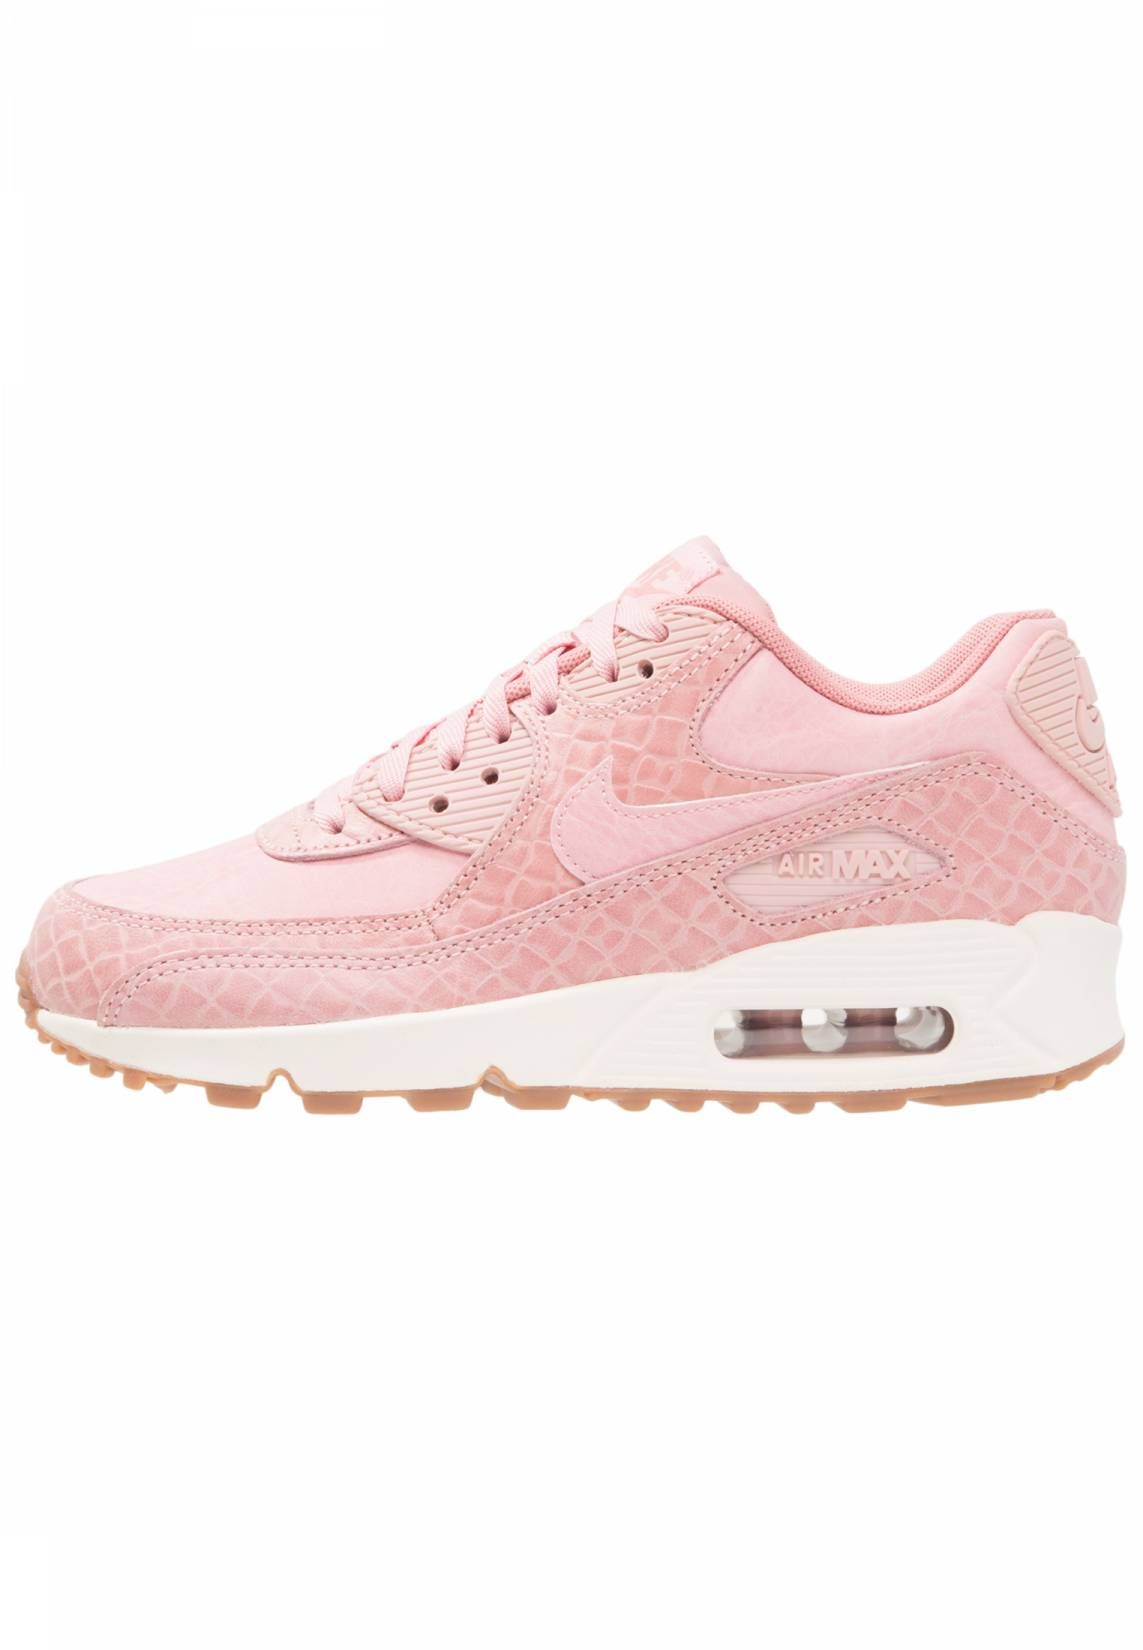 AIR MAX 90 PRM Trainers pearl pinksailpink glazemed